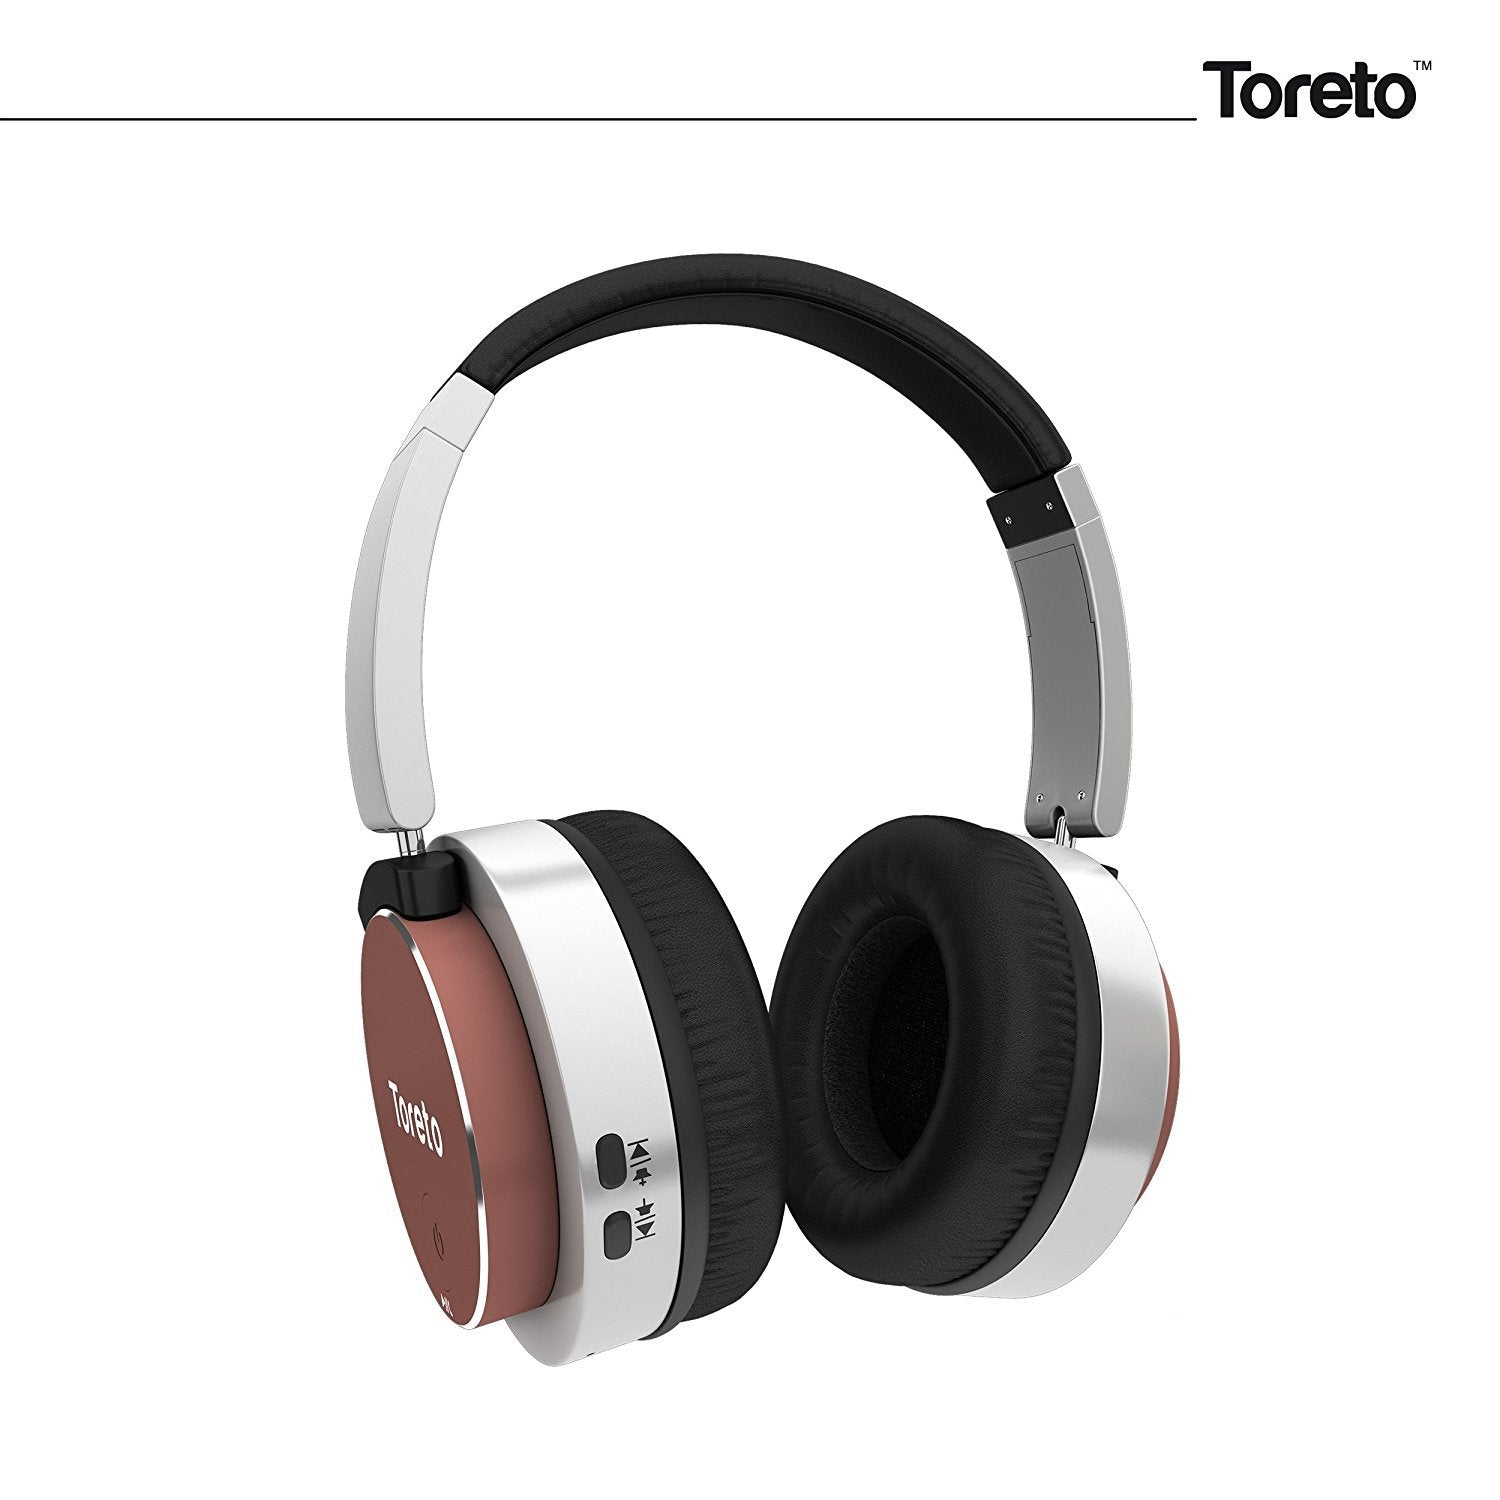 Toreto Bluetooth 2-1 Headphone